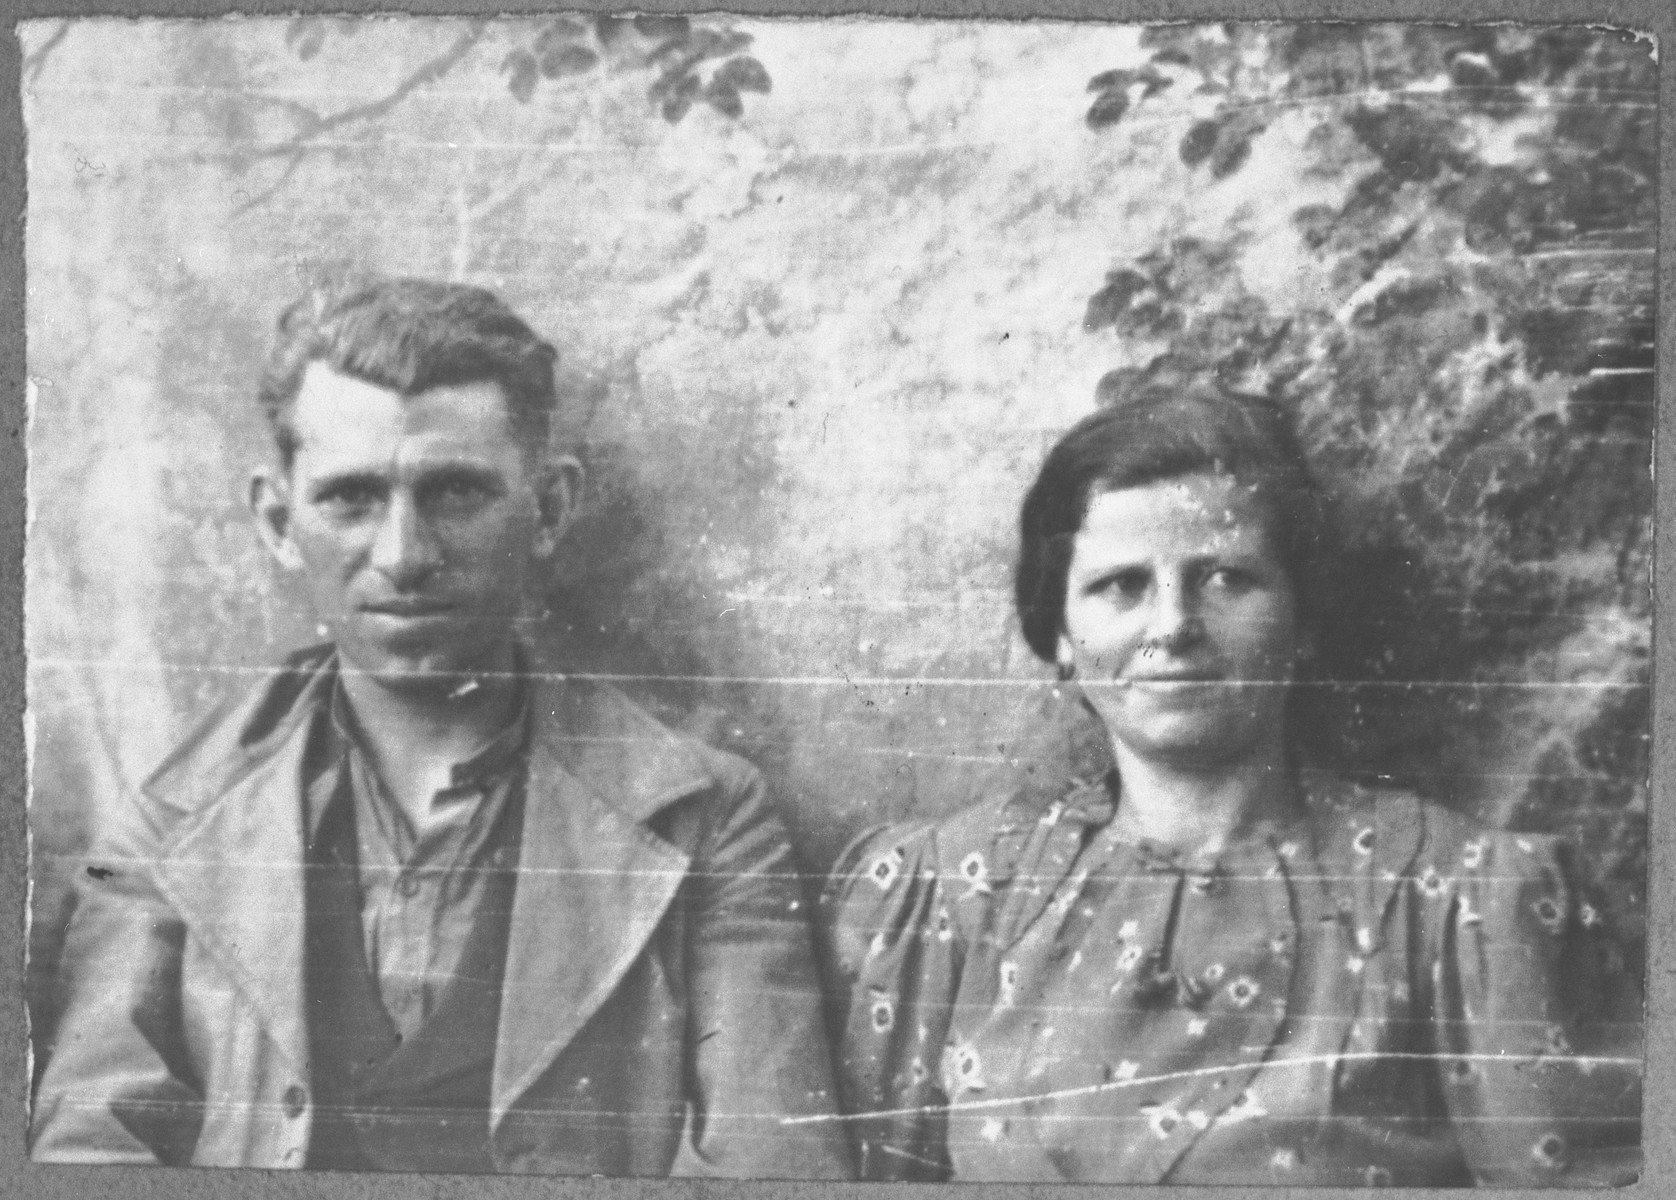 Portrait of Gabriel Kamchi, son of Mushon Kamchi and his wife, Klara.  He was a coachman.  They lived at Krstitsa 3 in Bitola.